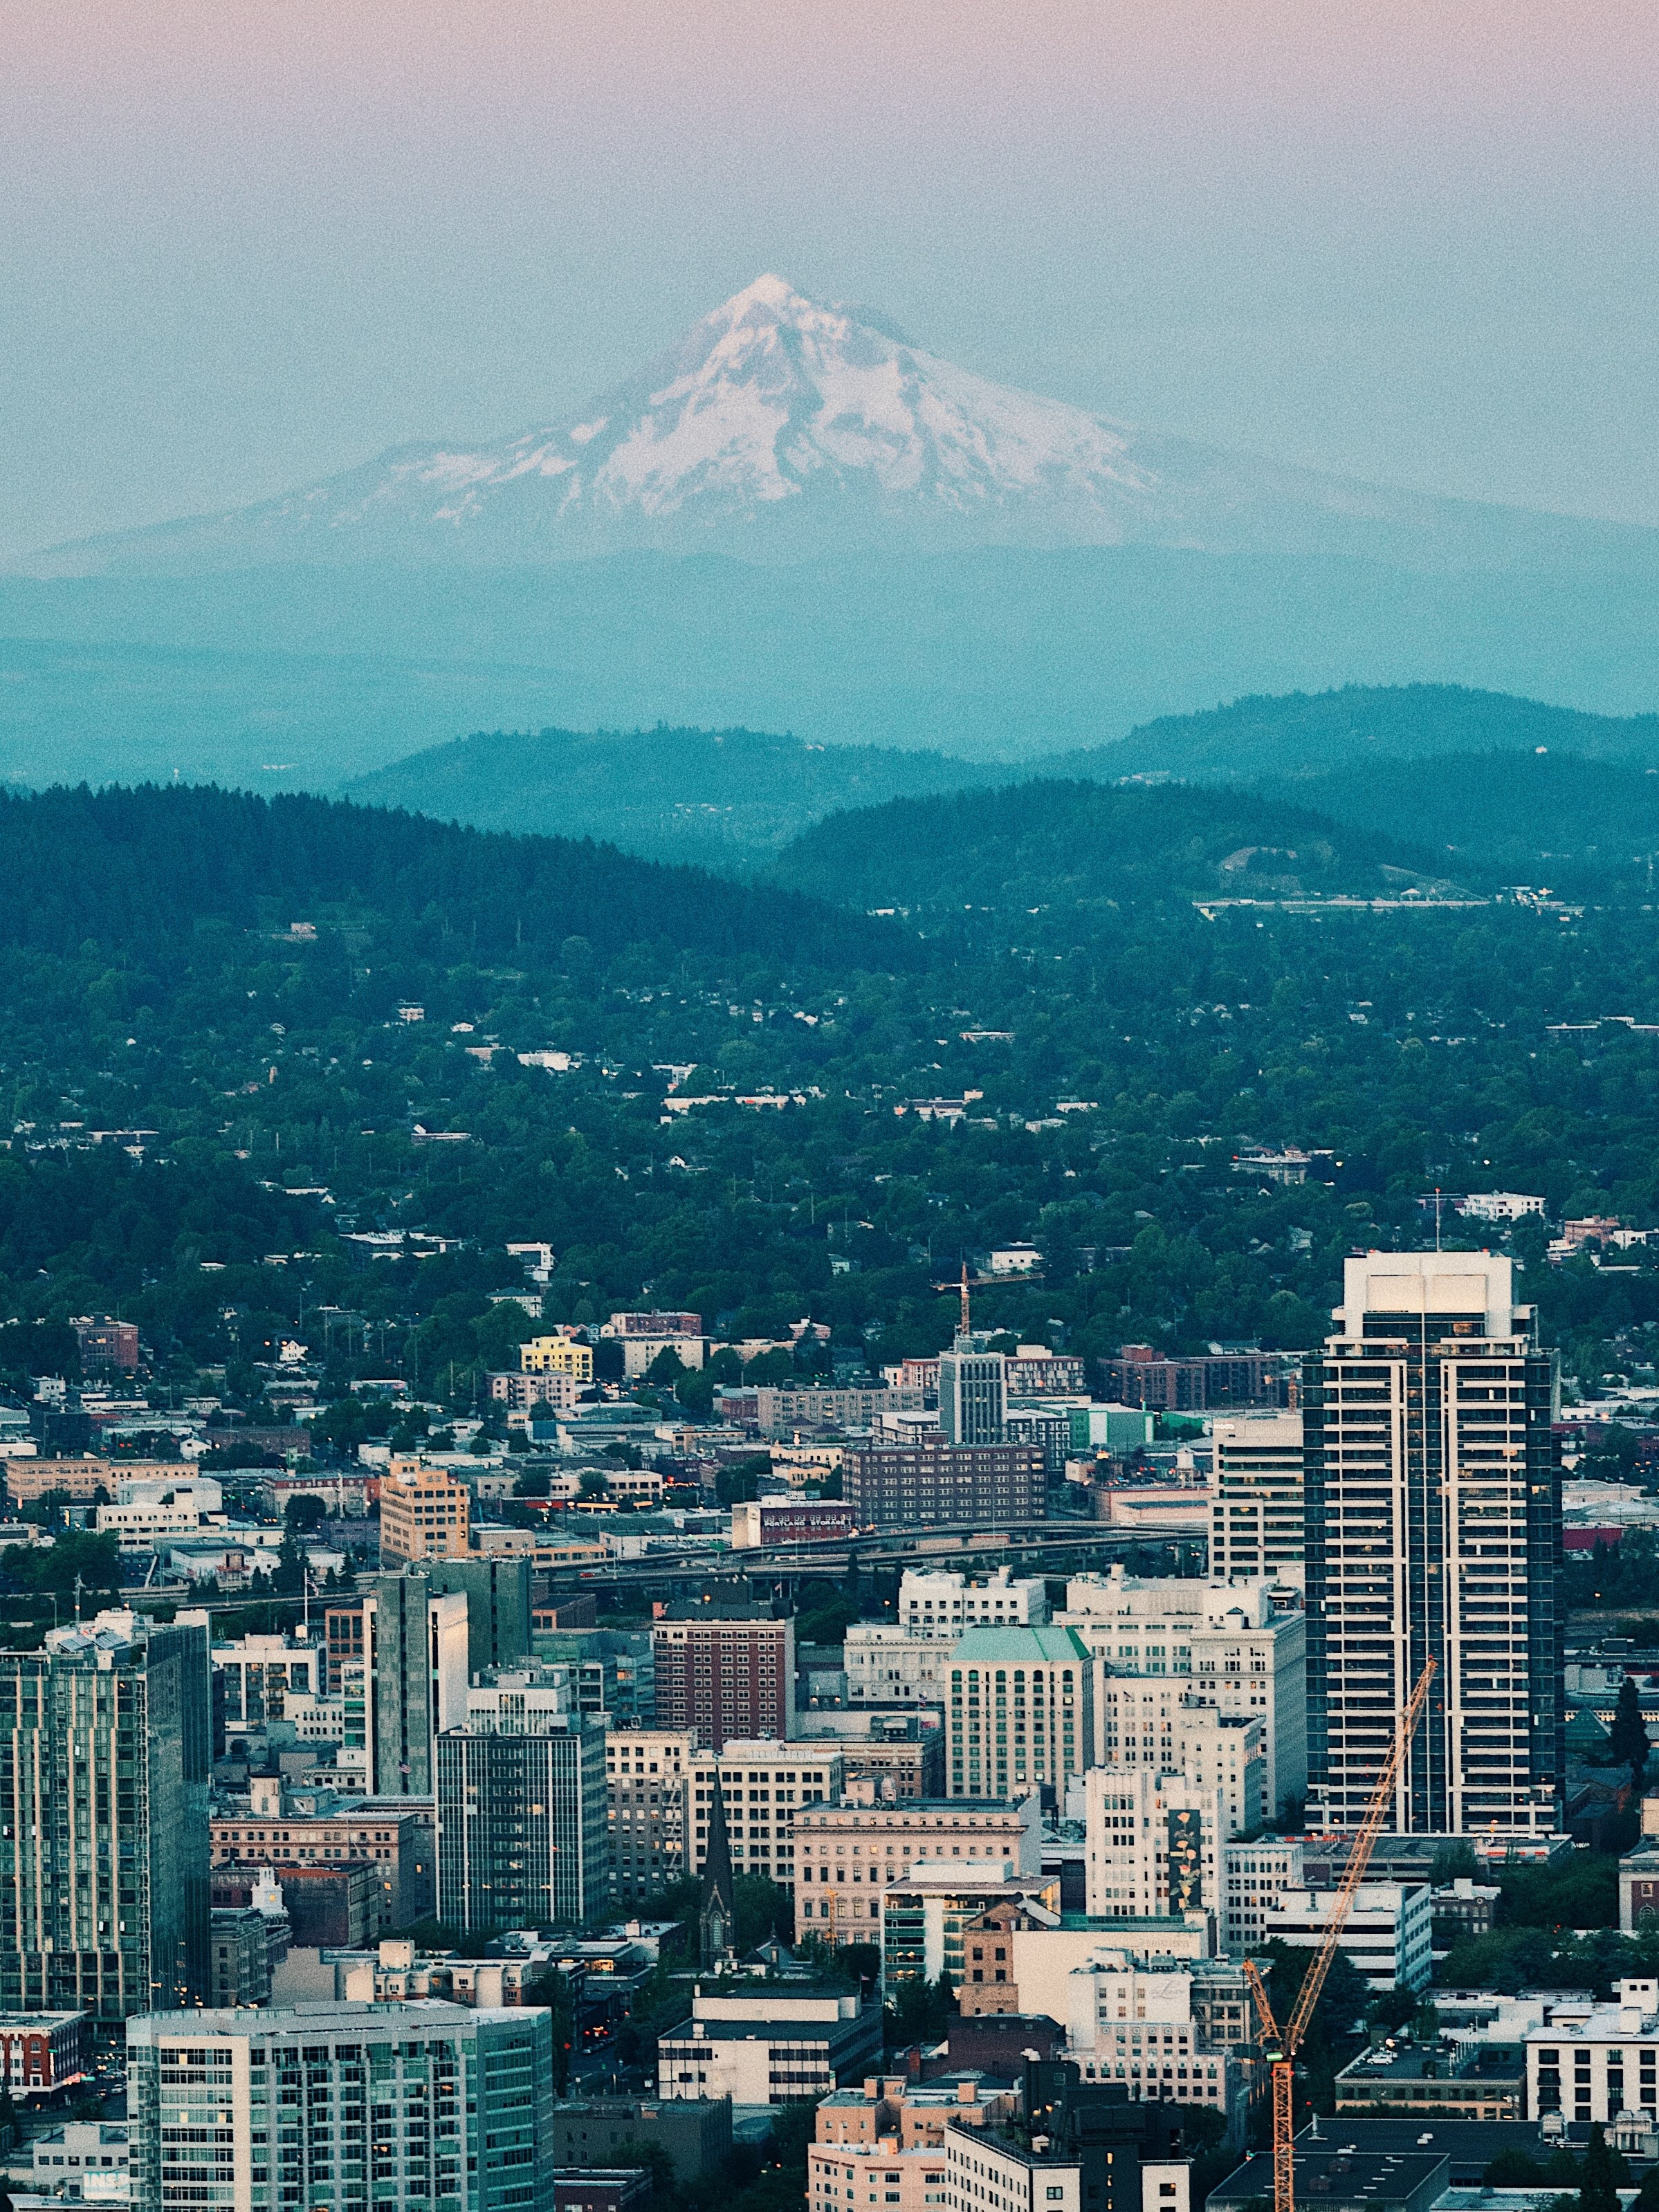 Skyline view of Portland